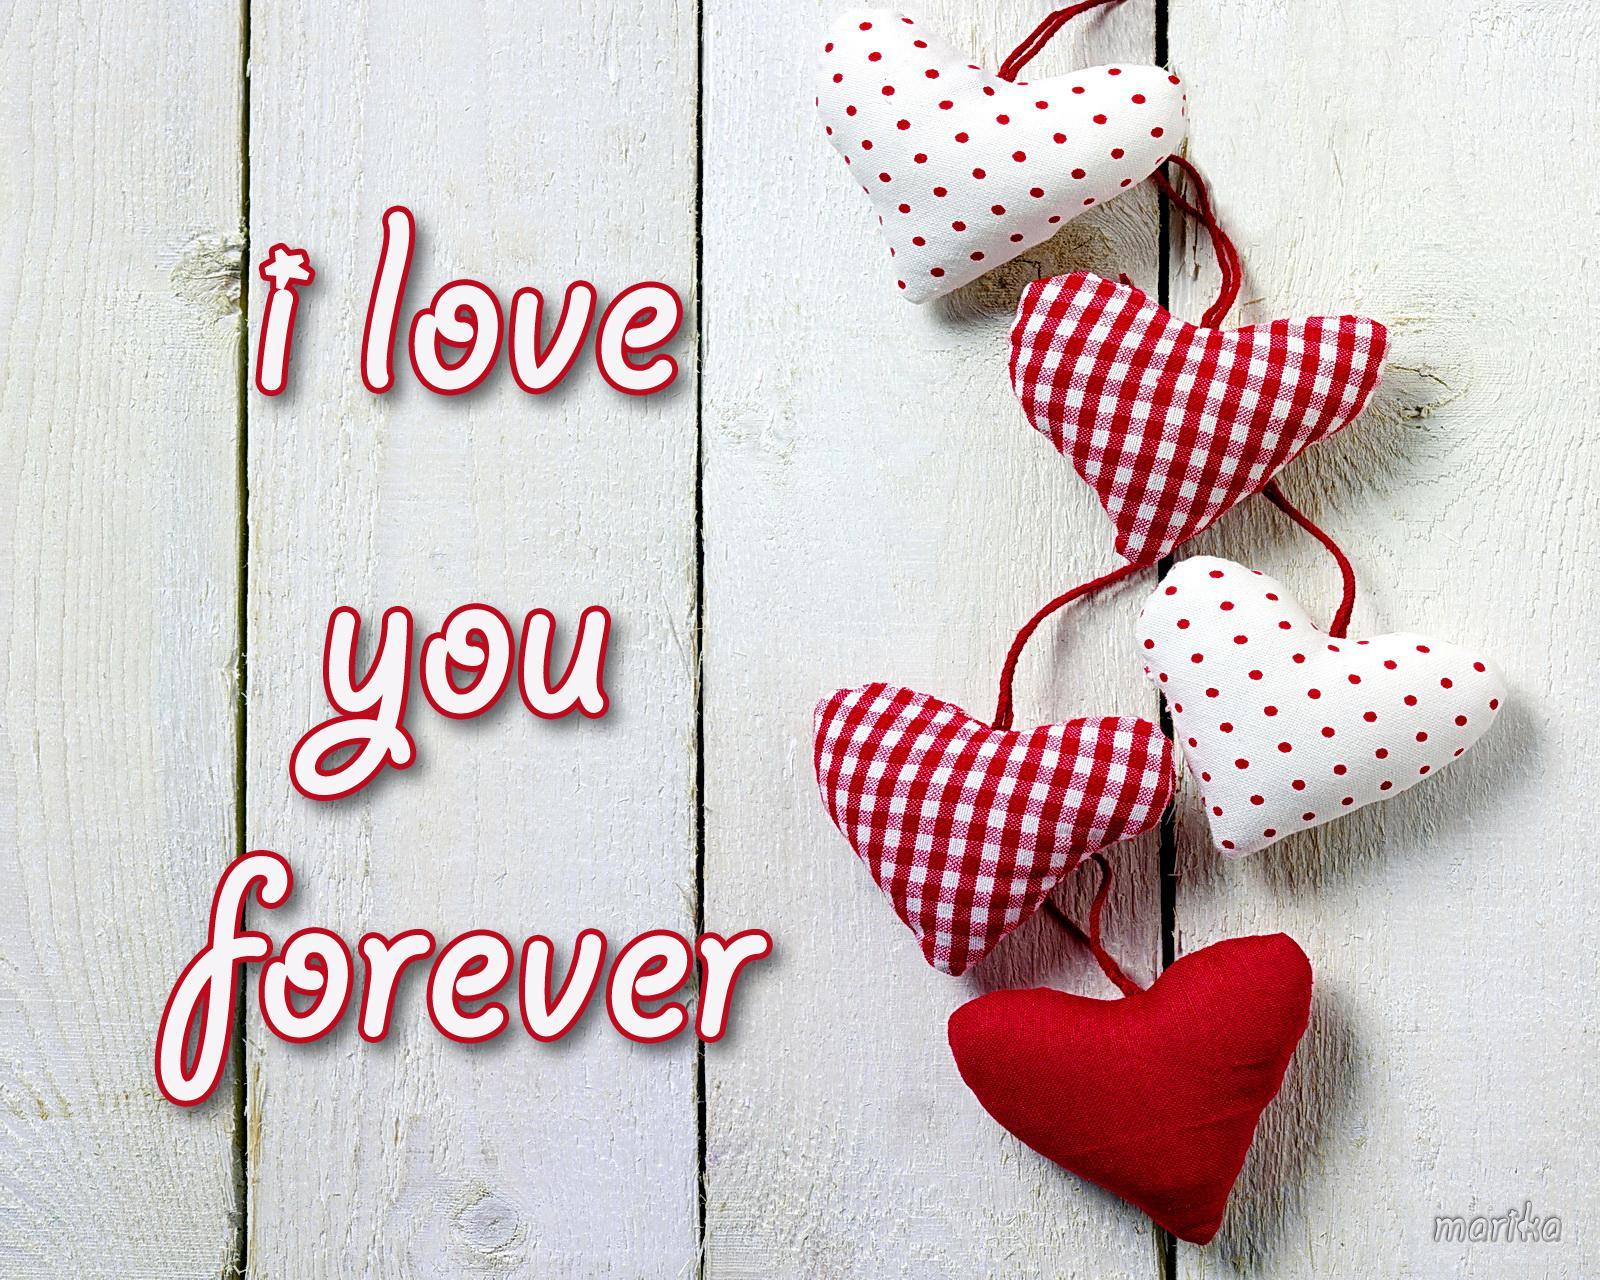 Cute I Love U Wallpapers For Mobile - Wallpaper Cave